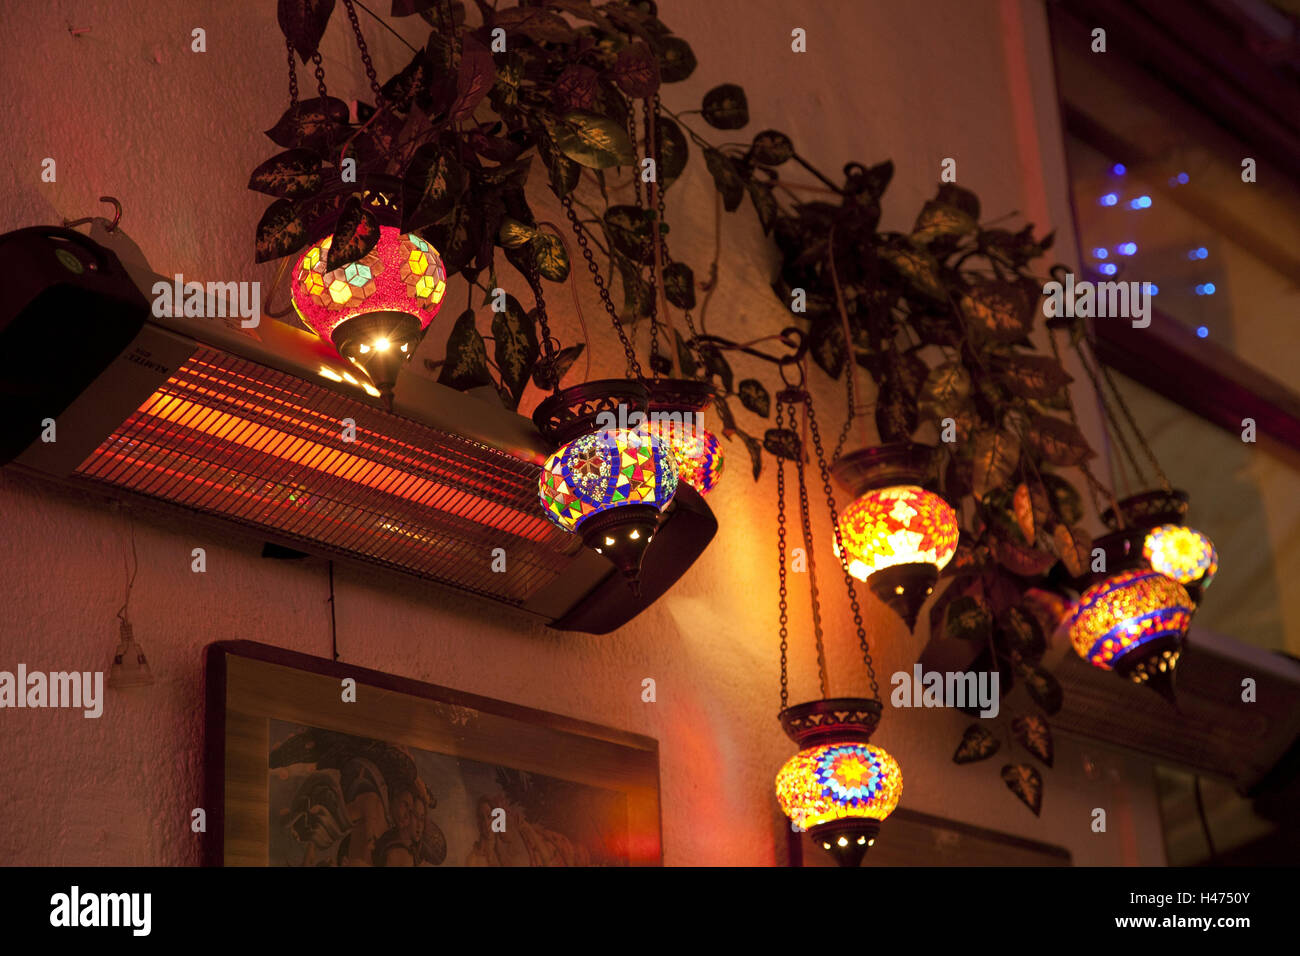 Lamps, brightly, hang, heating, radiant heater, ivy, oriental, lamps, glass lamps, mosaic, decoration, brightly, - Stock Image